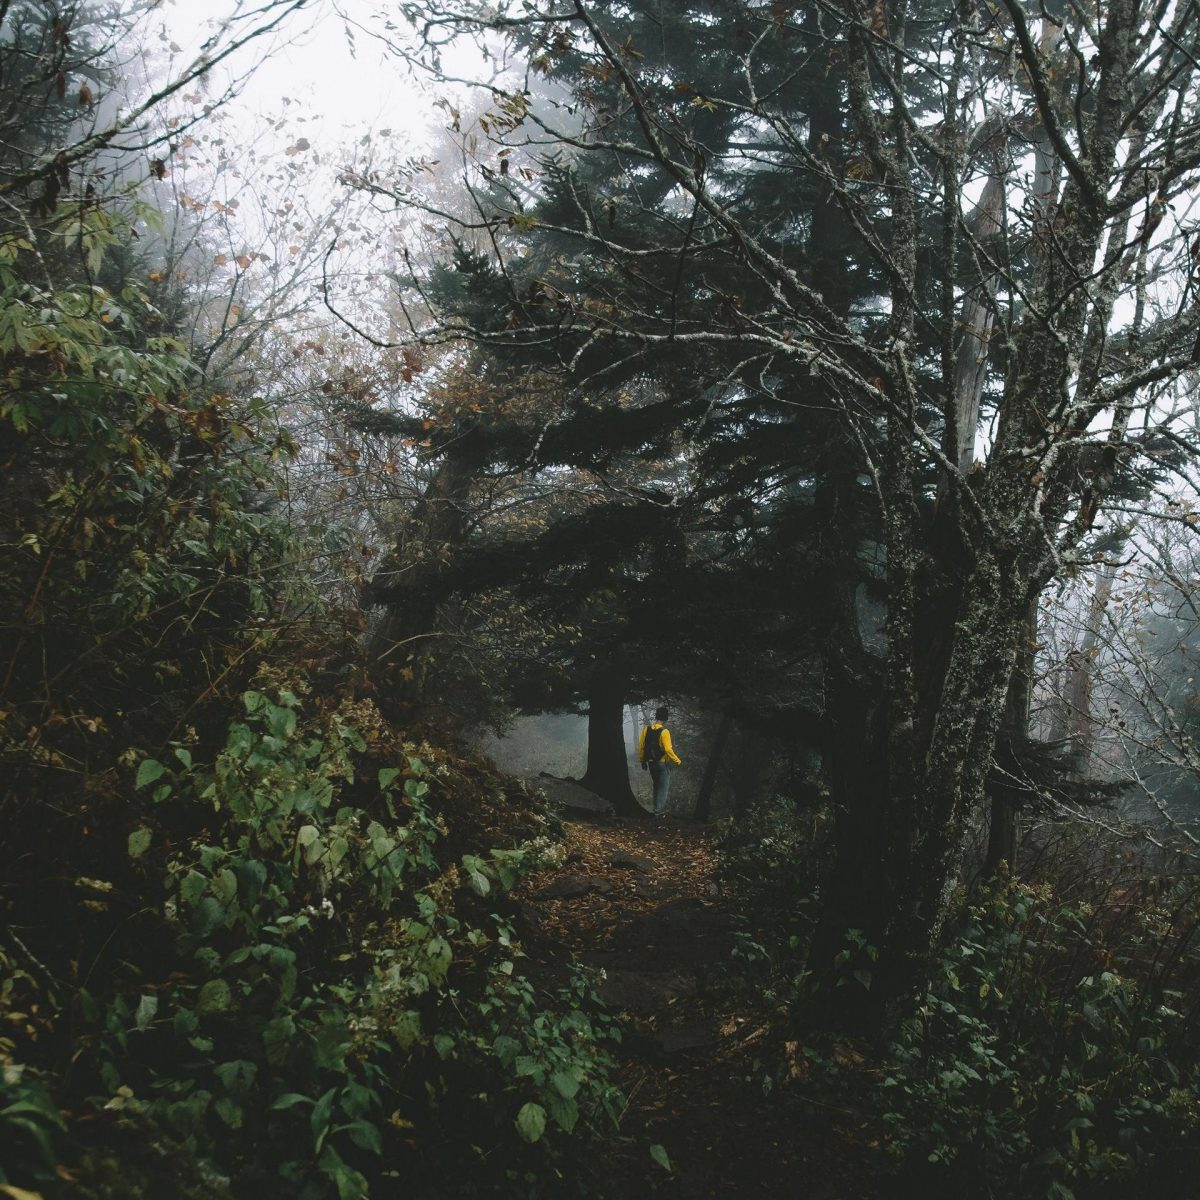 Hiking in woods